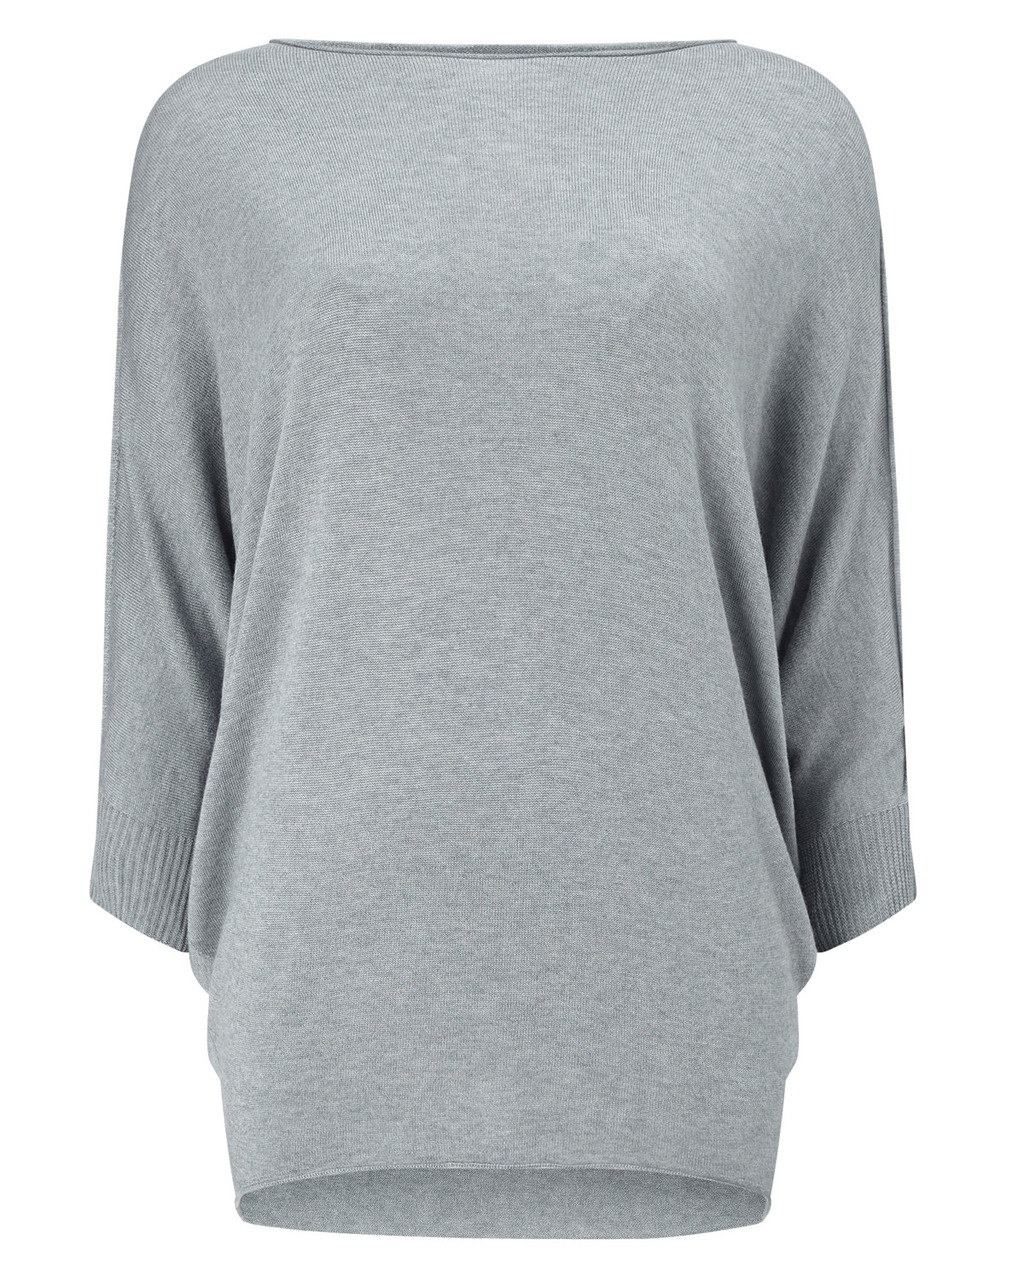 Becca Batwing Knit - neckline: slash/boat neckline; sleeve style: dolman/batwing; length: below the bottom; style: standard; predominant colour: mid grey; occasions: casual; fibres: wool - mix; fit: loose; sleeve length: 3/4 length; texture group: knits/crochet; pattern type: knitted - fine stitch; pattern: marl; season: a/w 2015